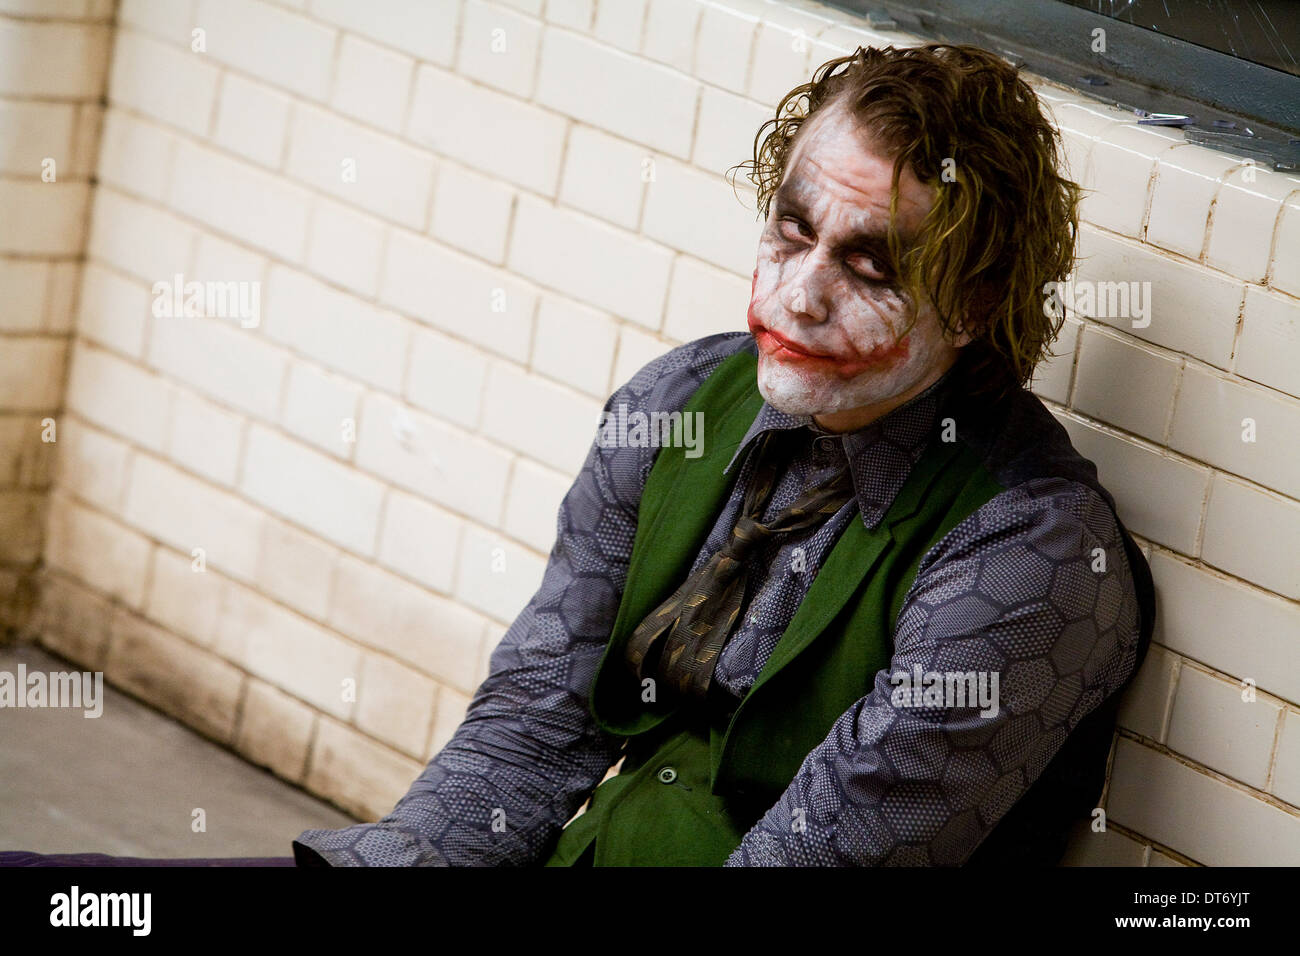 HEATH LEDGER THE DARK KNIGHT (2008) Stock Photo